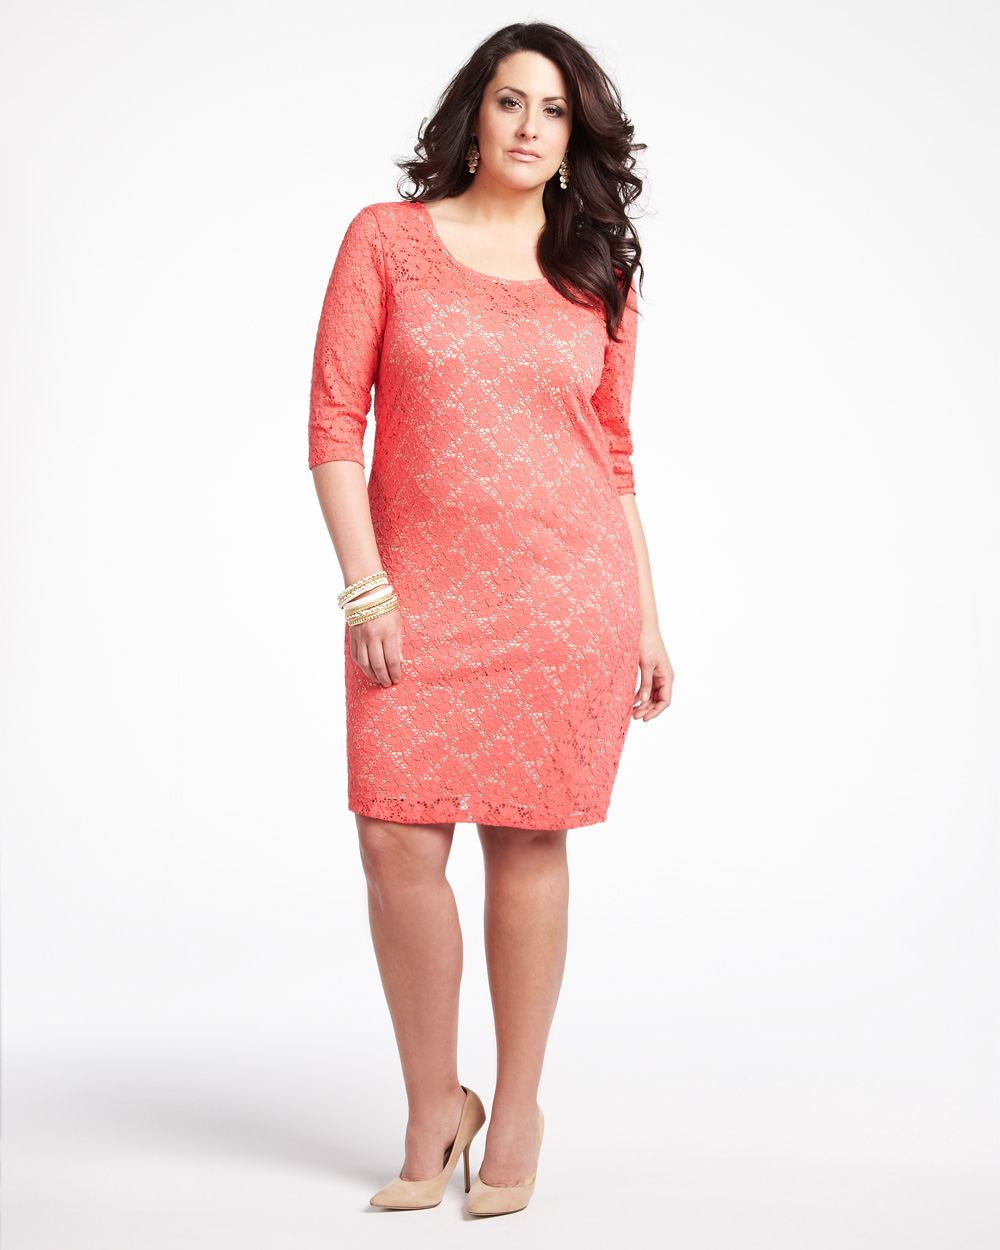 Plus sizes clothes for women